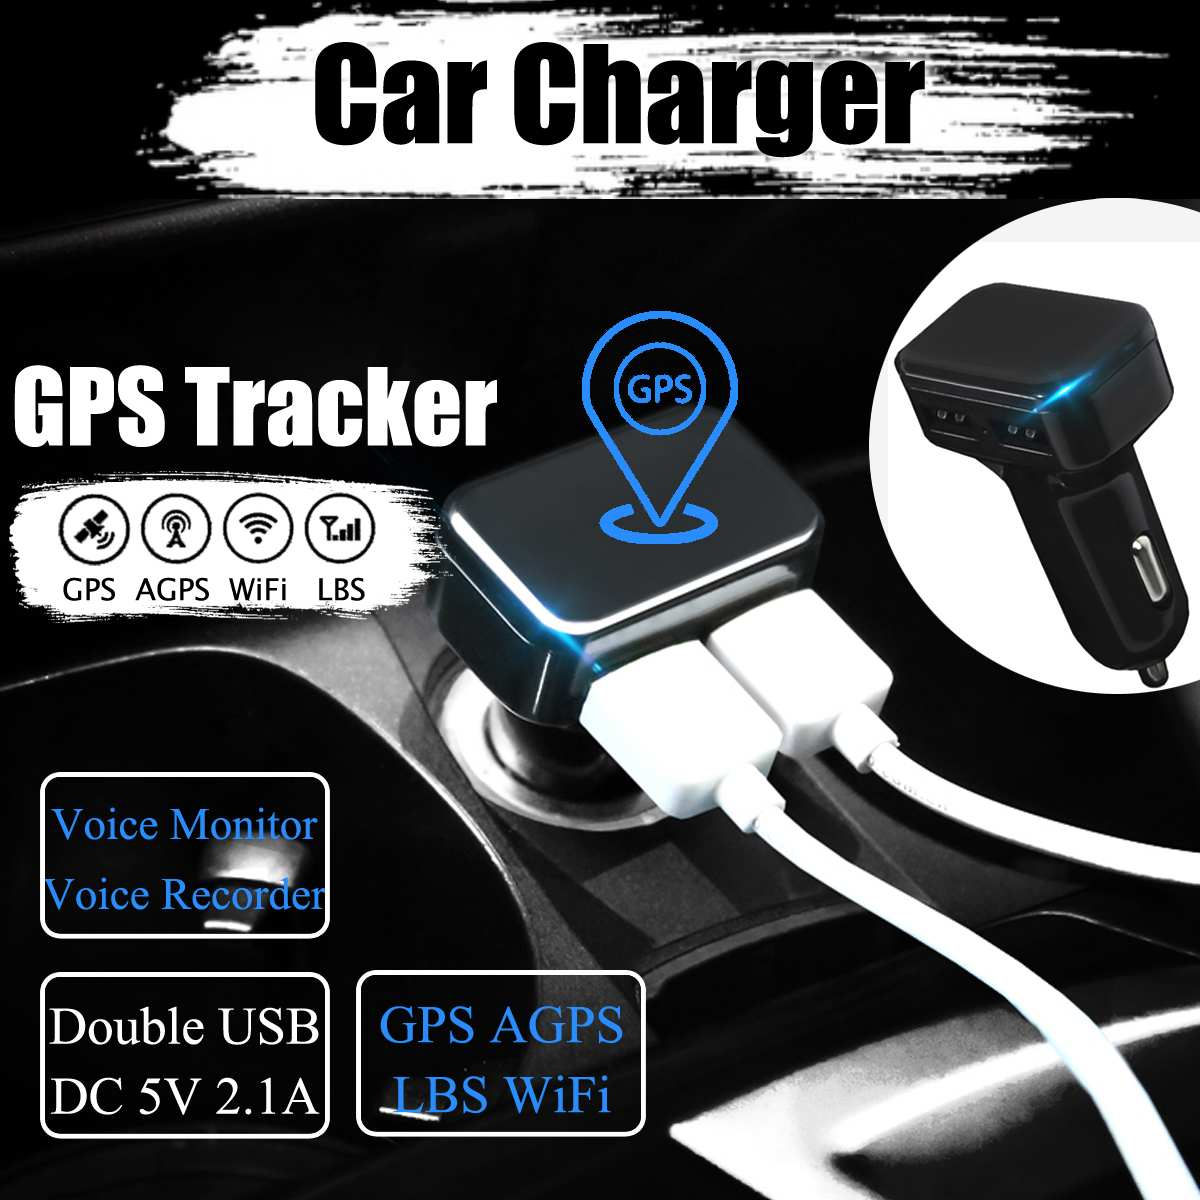 Car Charger GPS Tracker GPS GSM Wifi LBS Real-time Tracking Call SMS Coordinate Voice Monitoring Recorder Free APP Web ZX303 PCB image